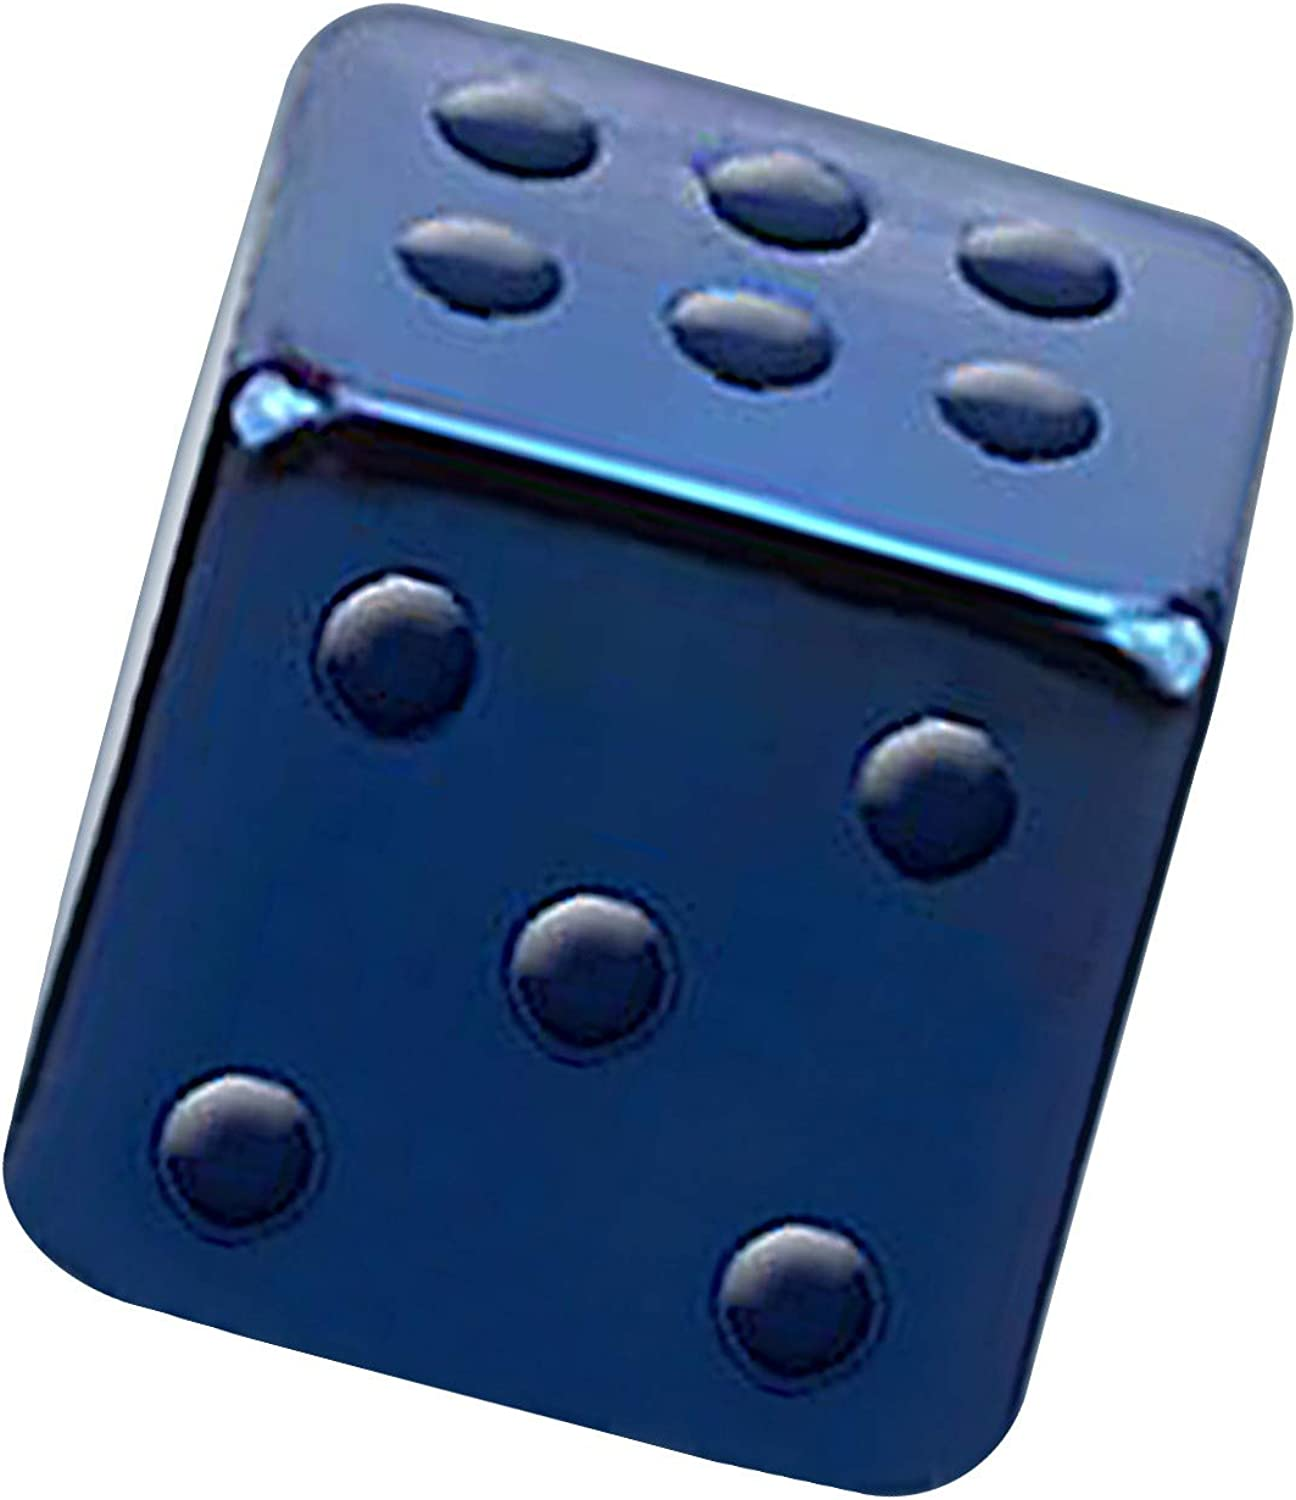 VOTREPIERCING Blue Anodized Classic 316L Steel Dice Only Piercing Complete Free Shipping Loose